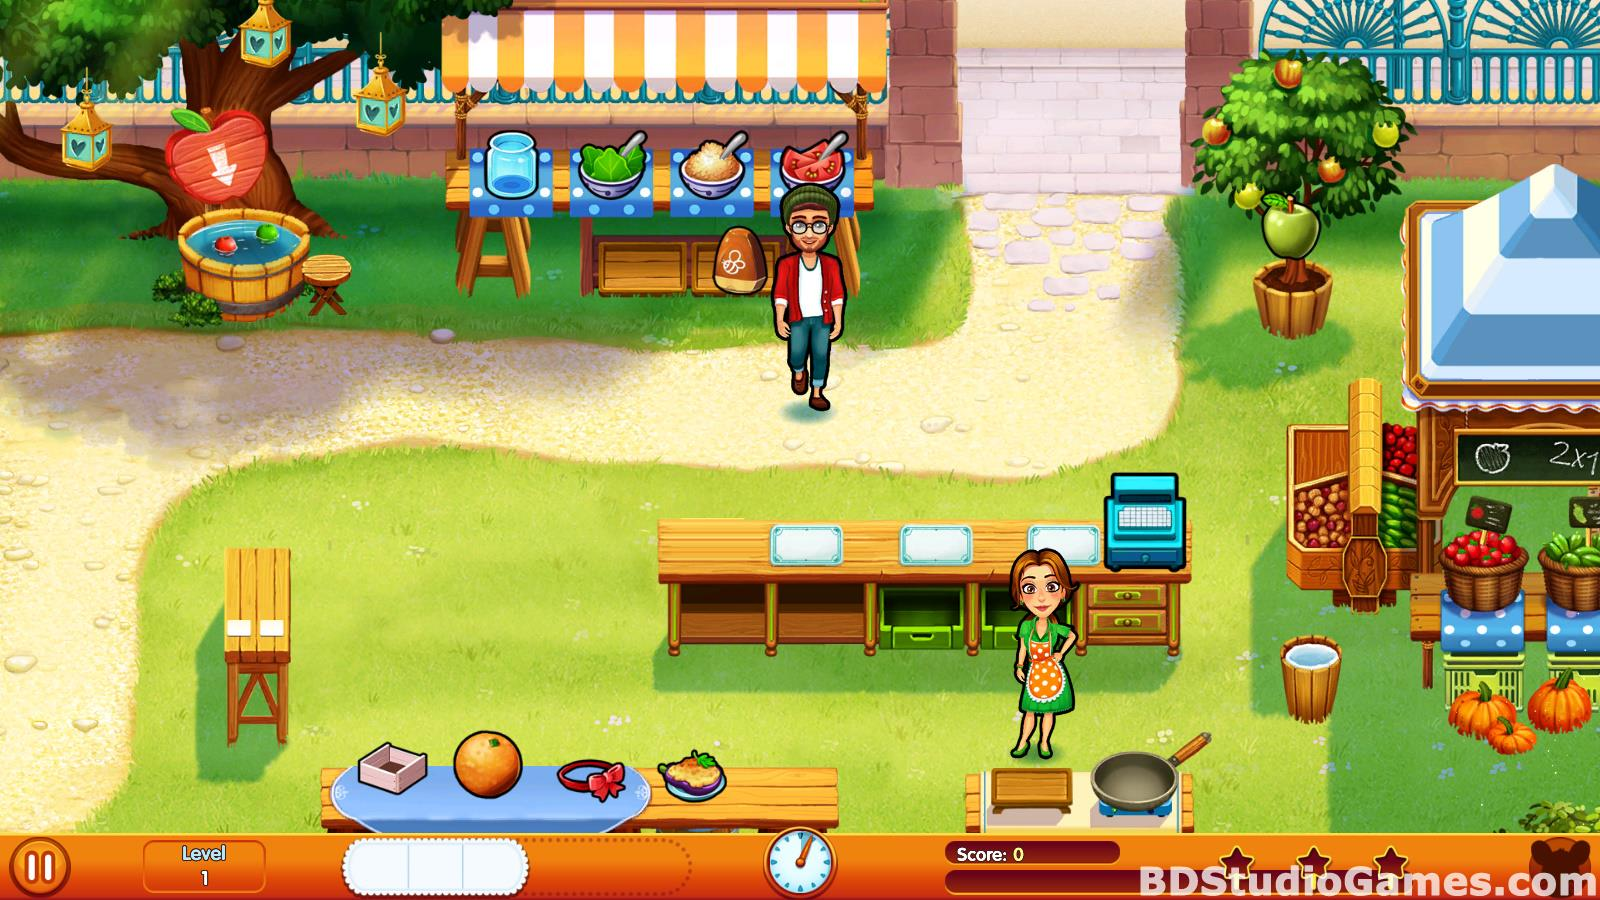 Delicious: Emily's Road Trip Collector's Edition Free Download Screenshots 07